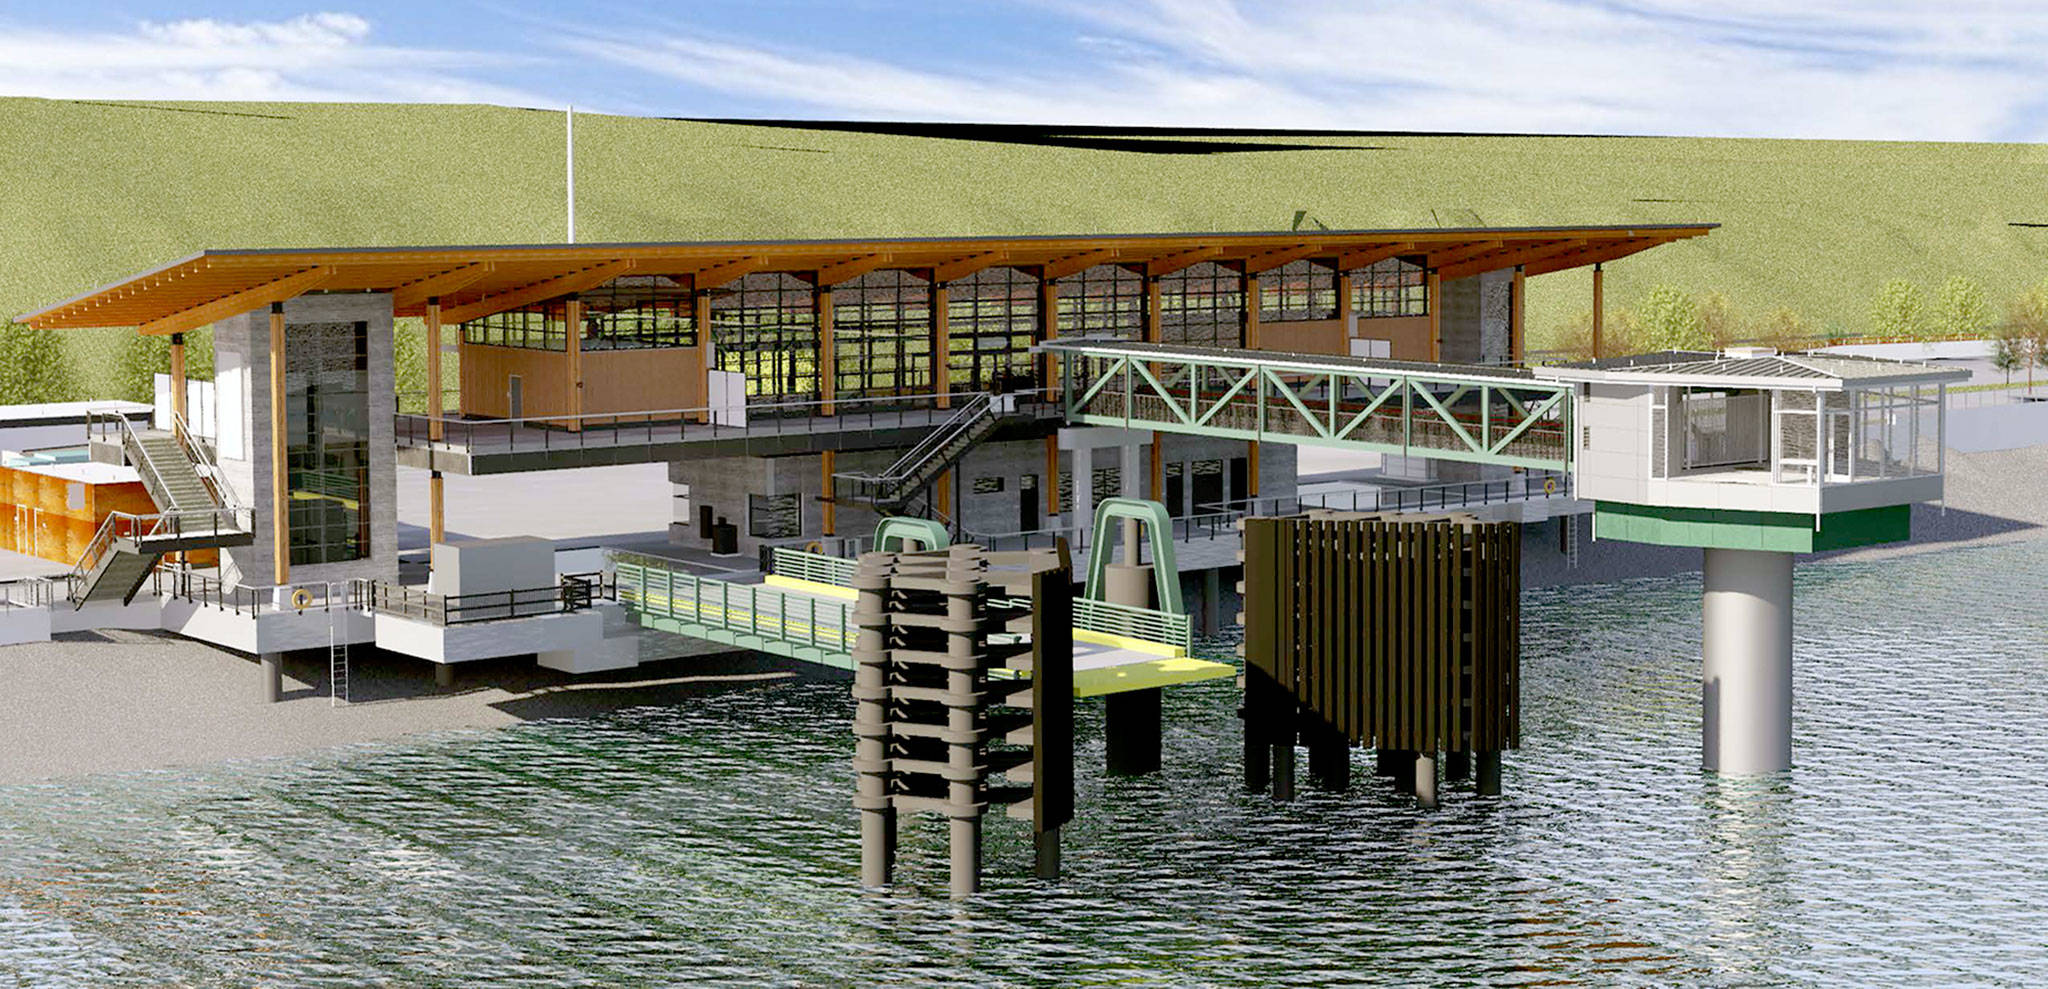 An artist's rendering of the new ferry terminal under construction in Mukilteo. (Washington State Department of Transportation)